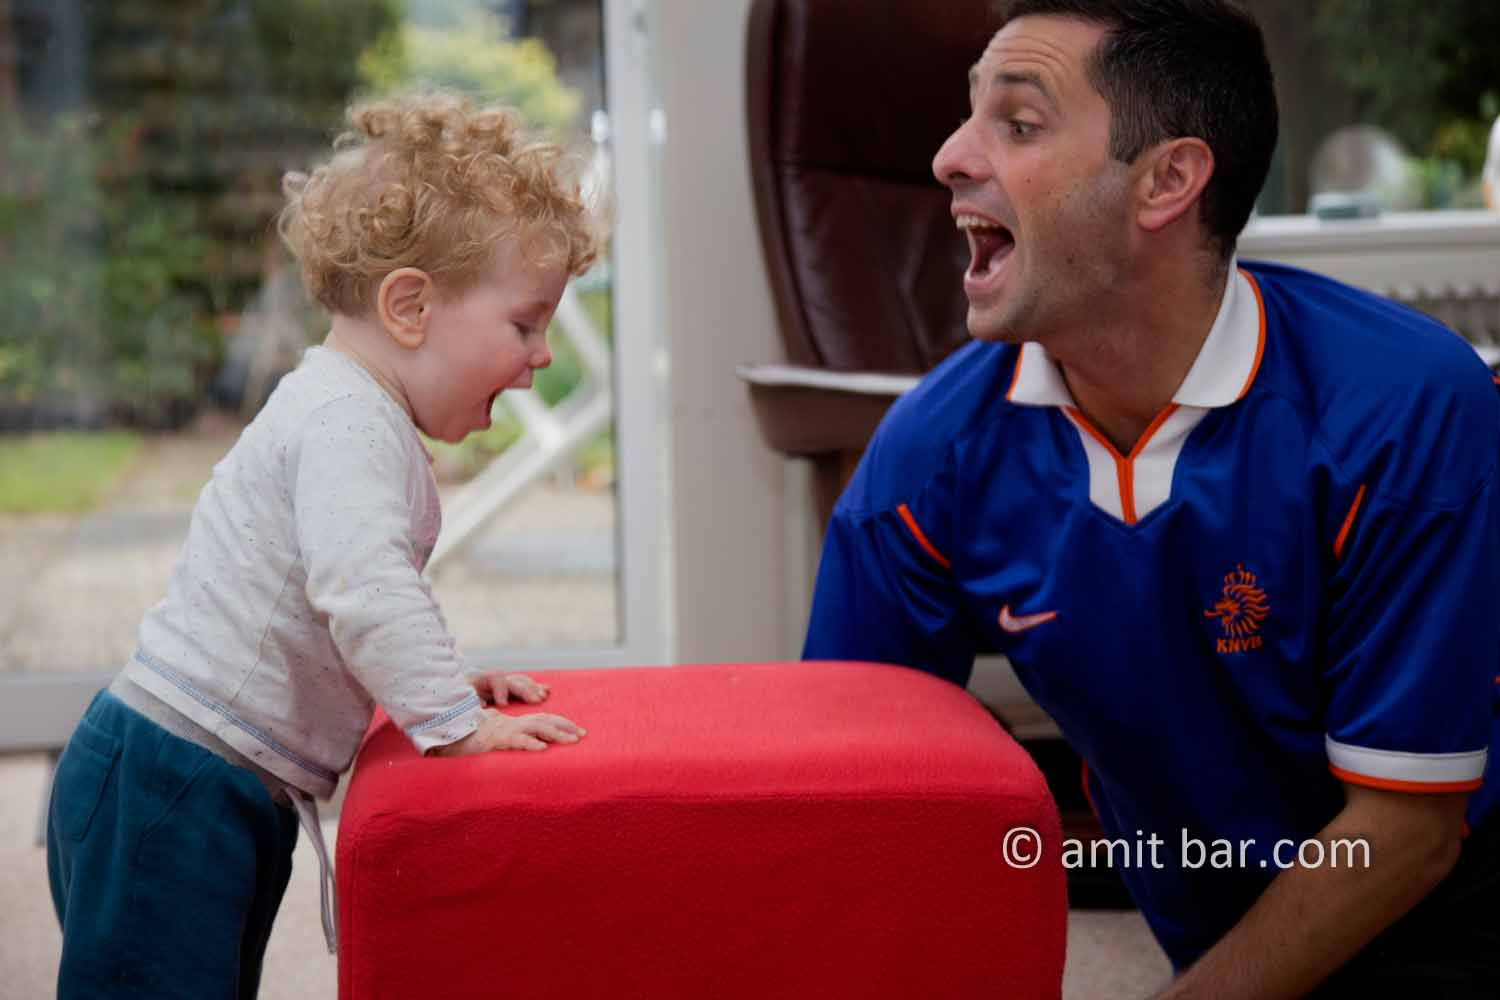 Roaring: A baby and his uncle having fun